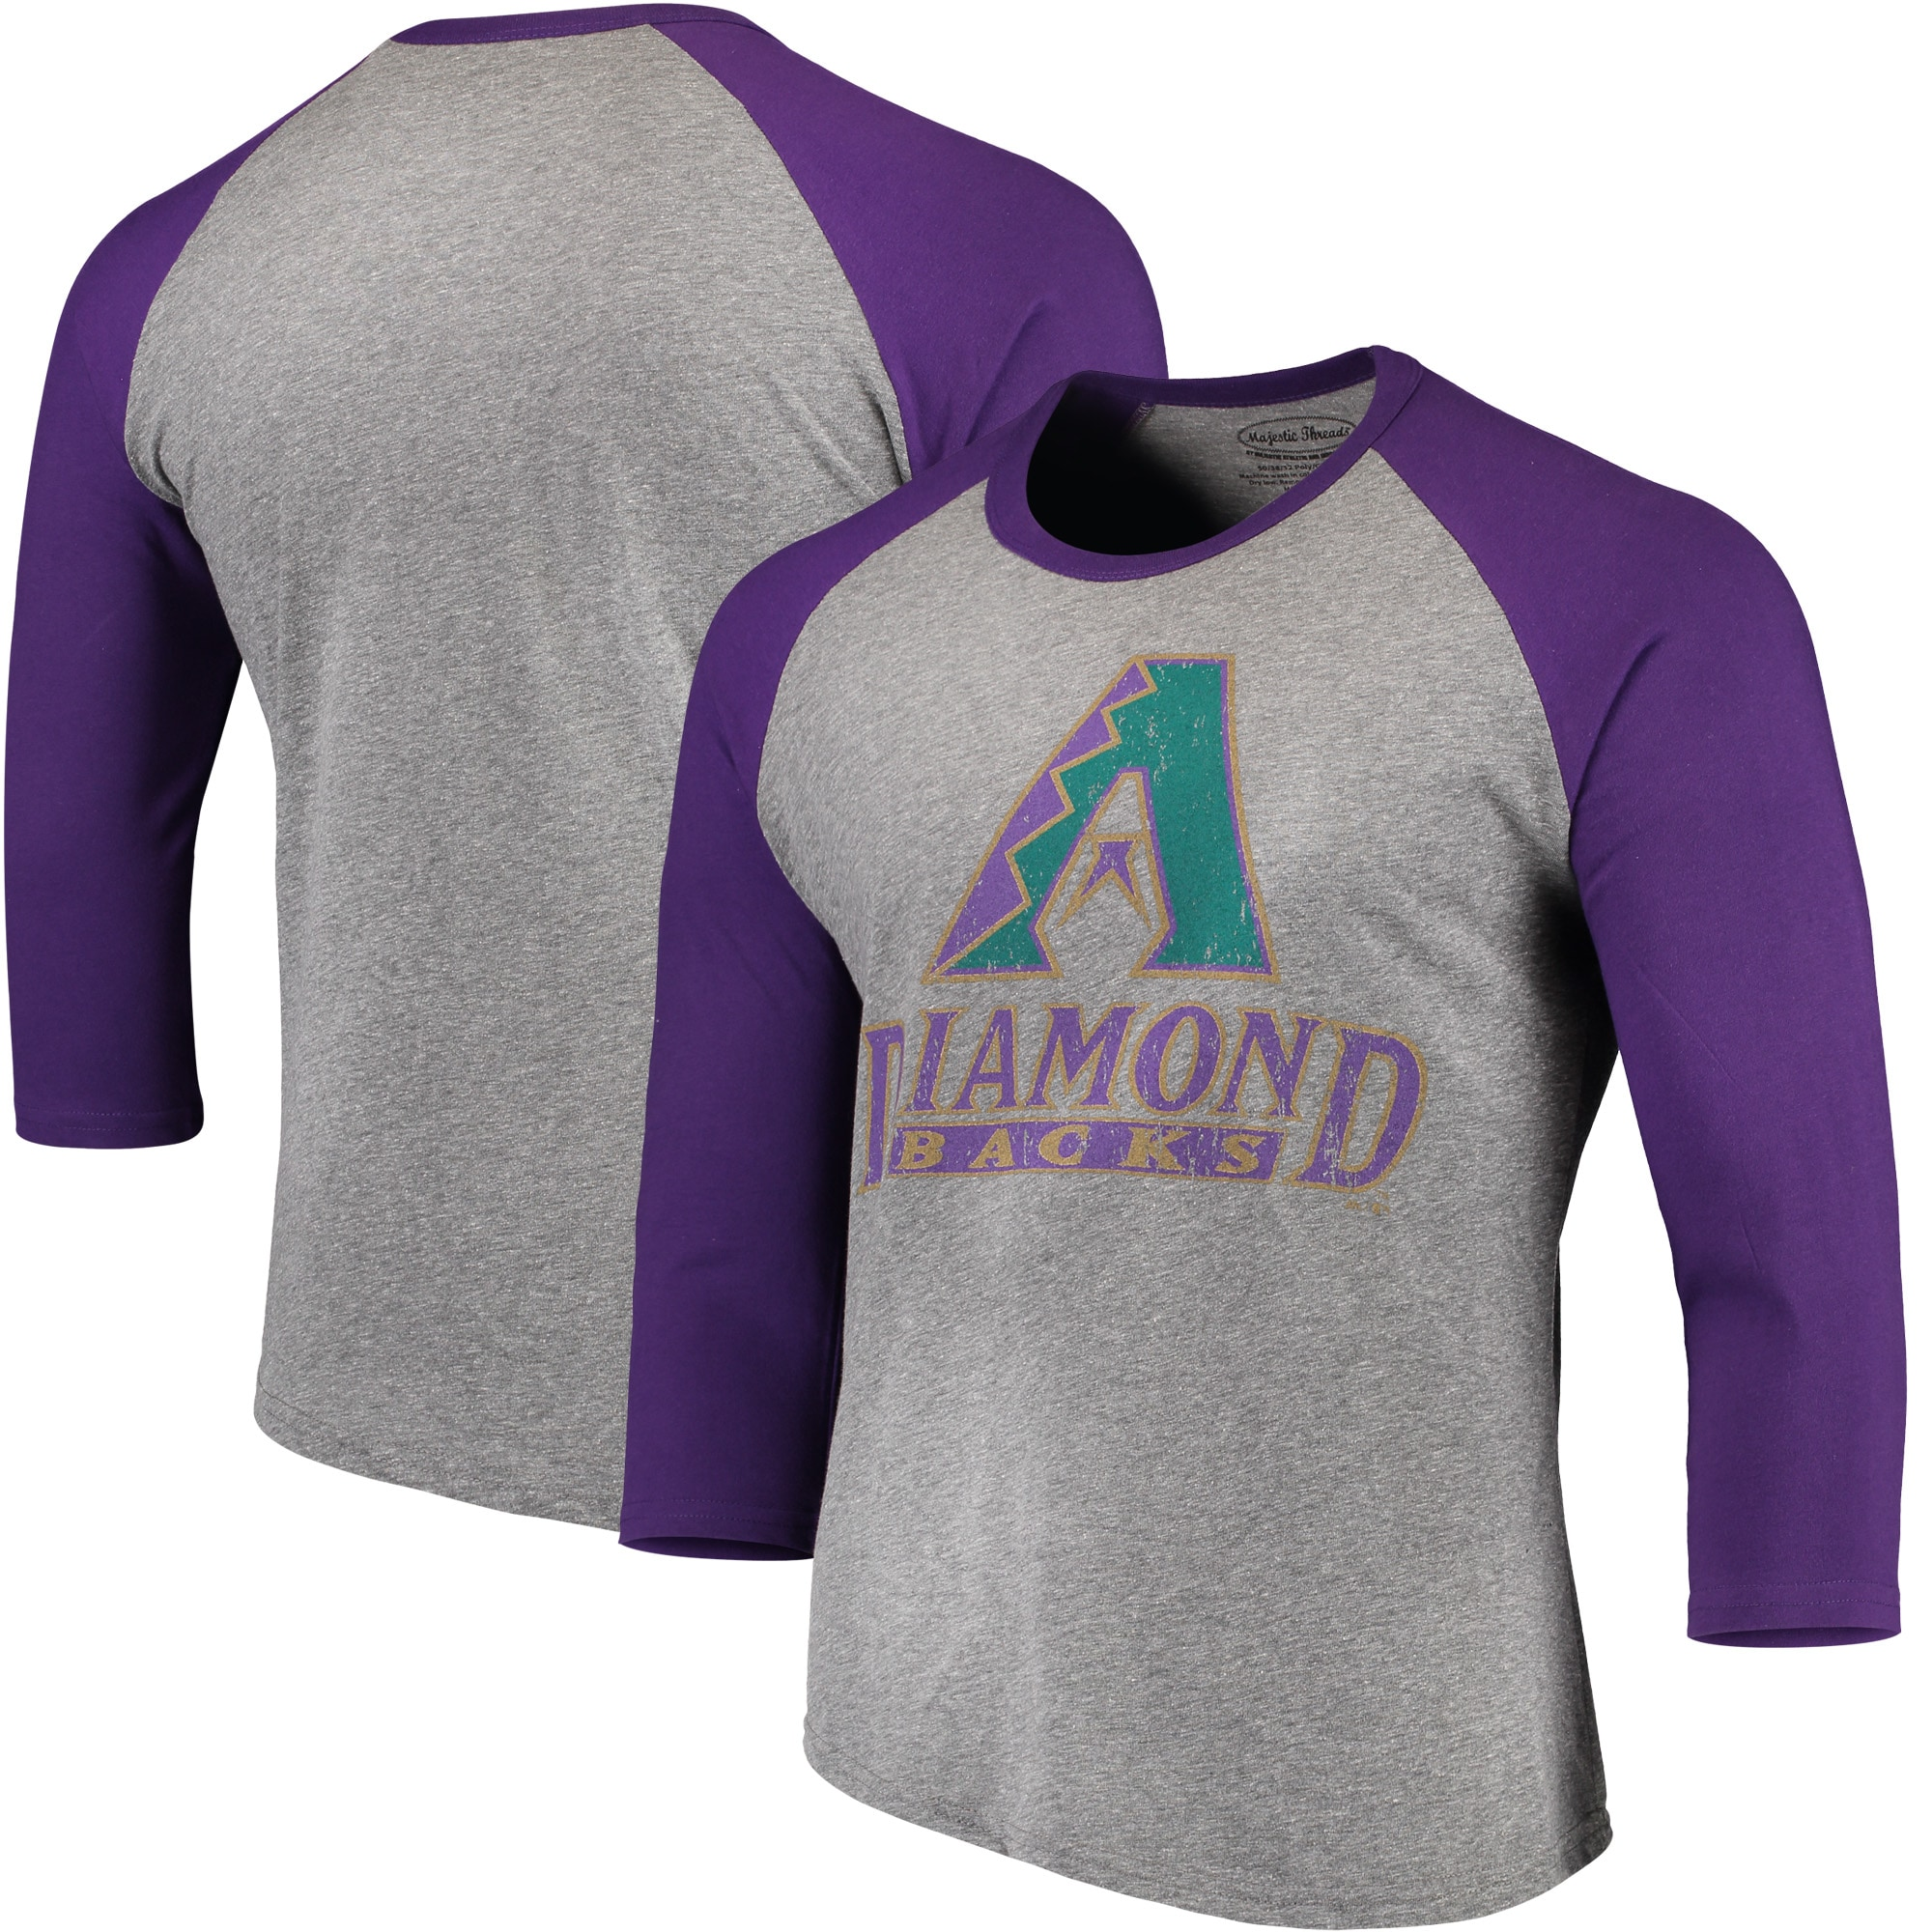 Arizona Diamondbacks Majestic Threads Cooperstown Collection 3/4-Sleeve Raglan Tri-Blend T-Shirt - Heathered Gray/Purple